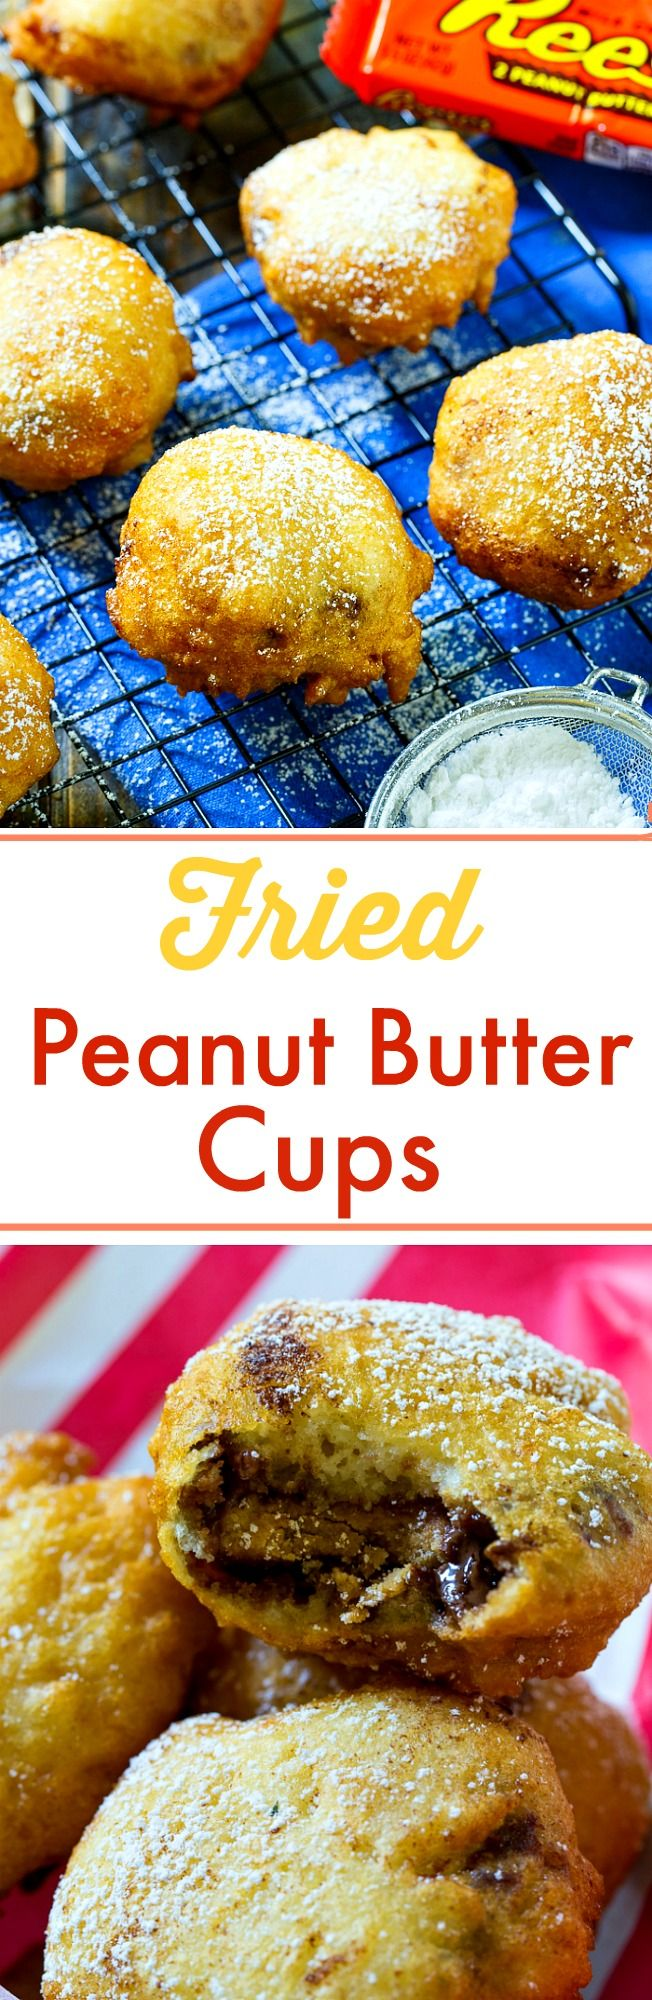 How to make deep fried peanut butter